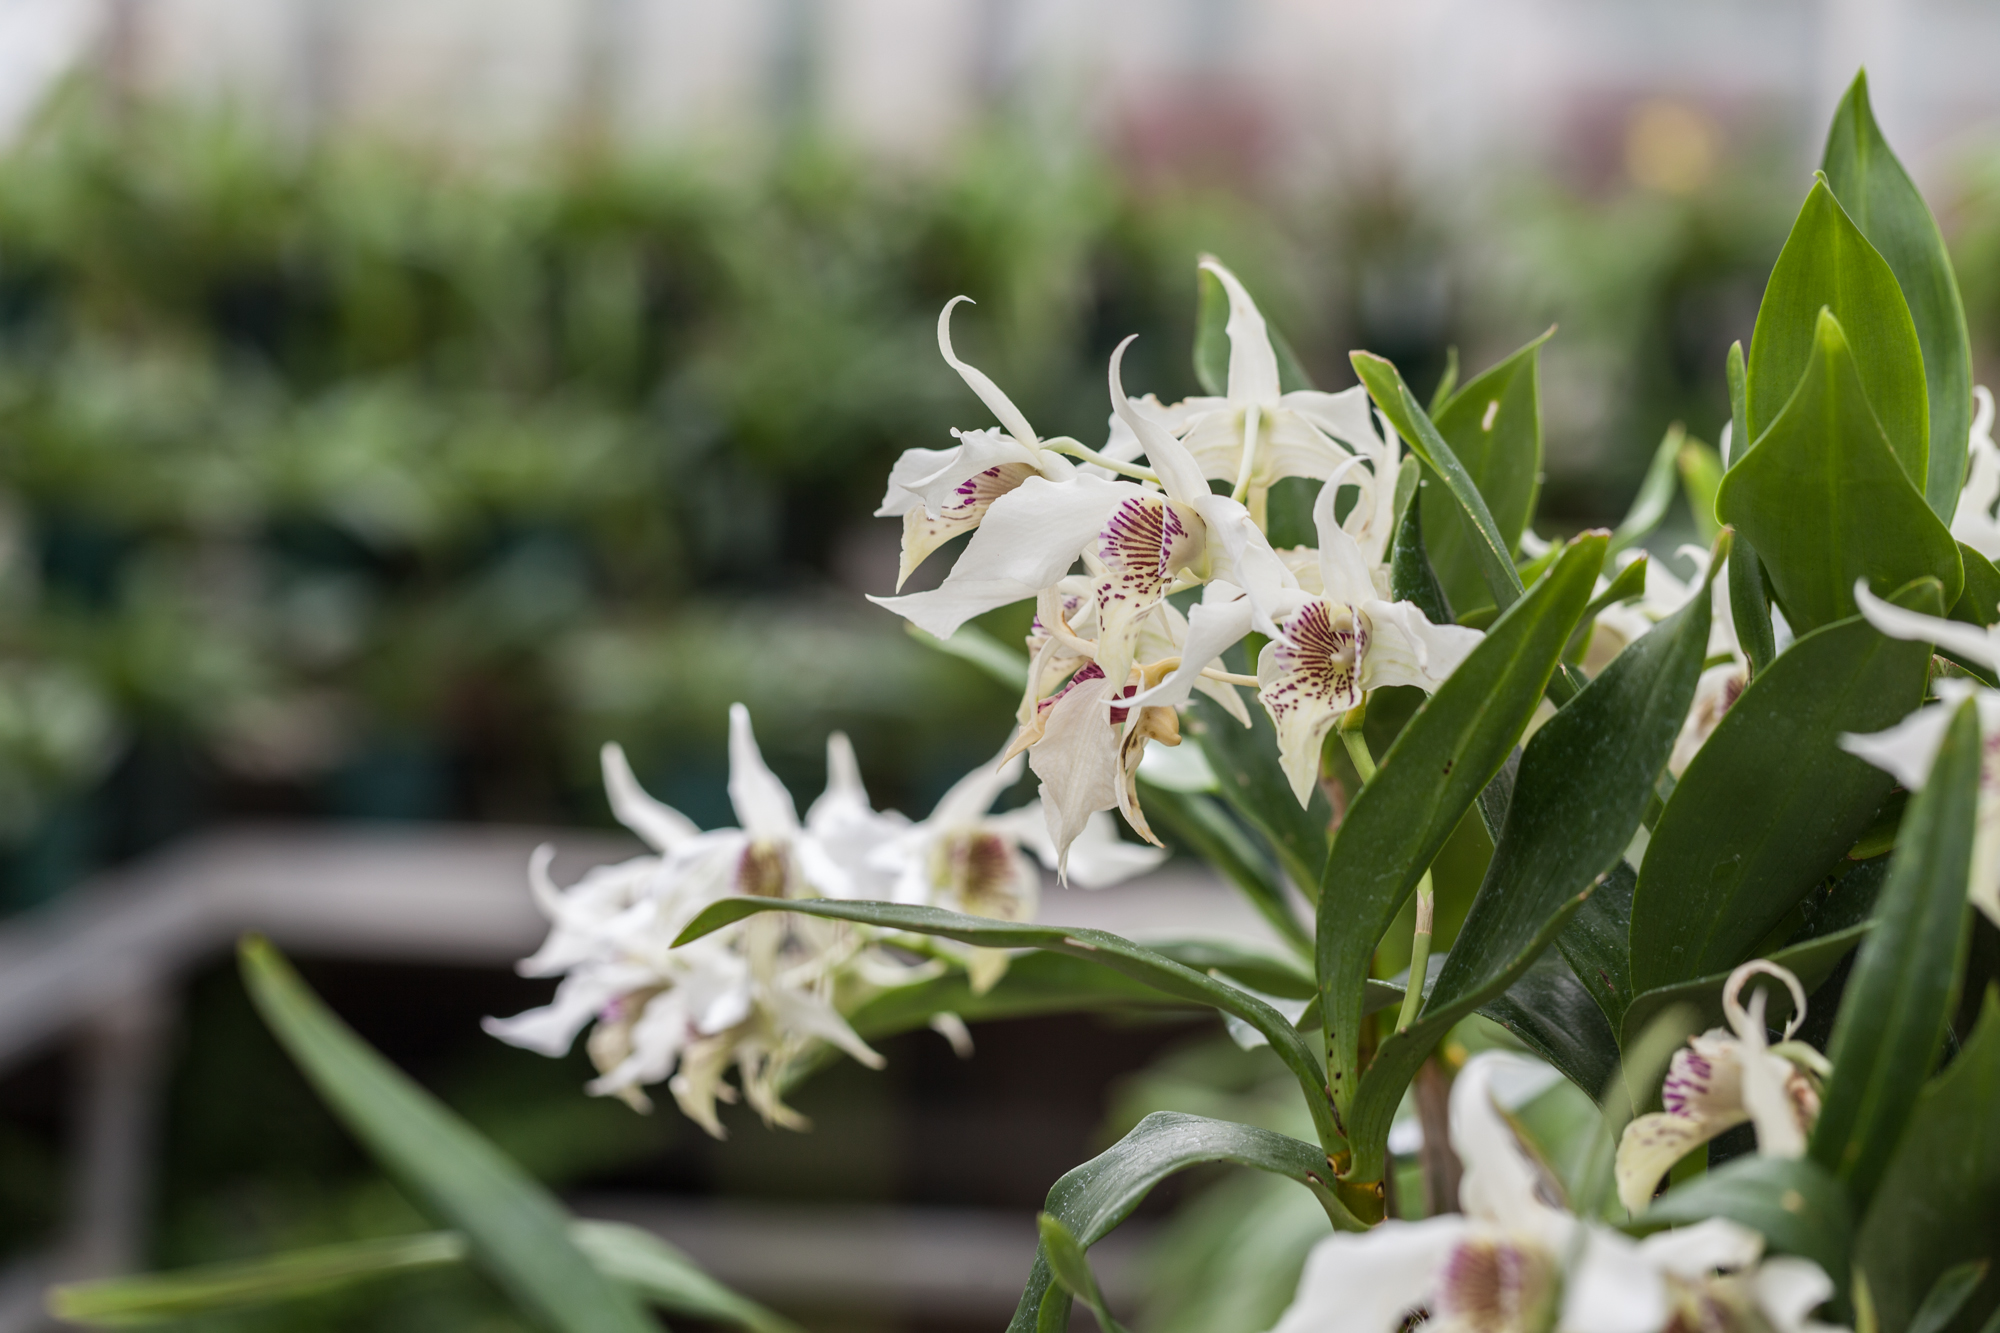 Planting-Fields-Greenhouse-Summer-Rayne-Oakes-orchids.jpg